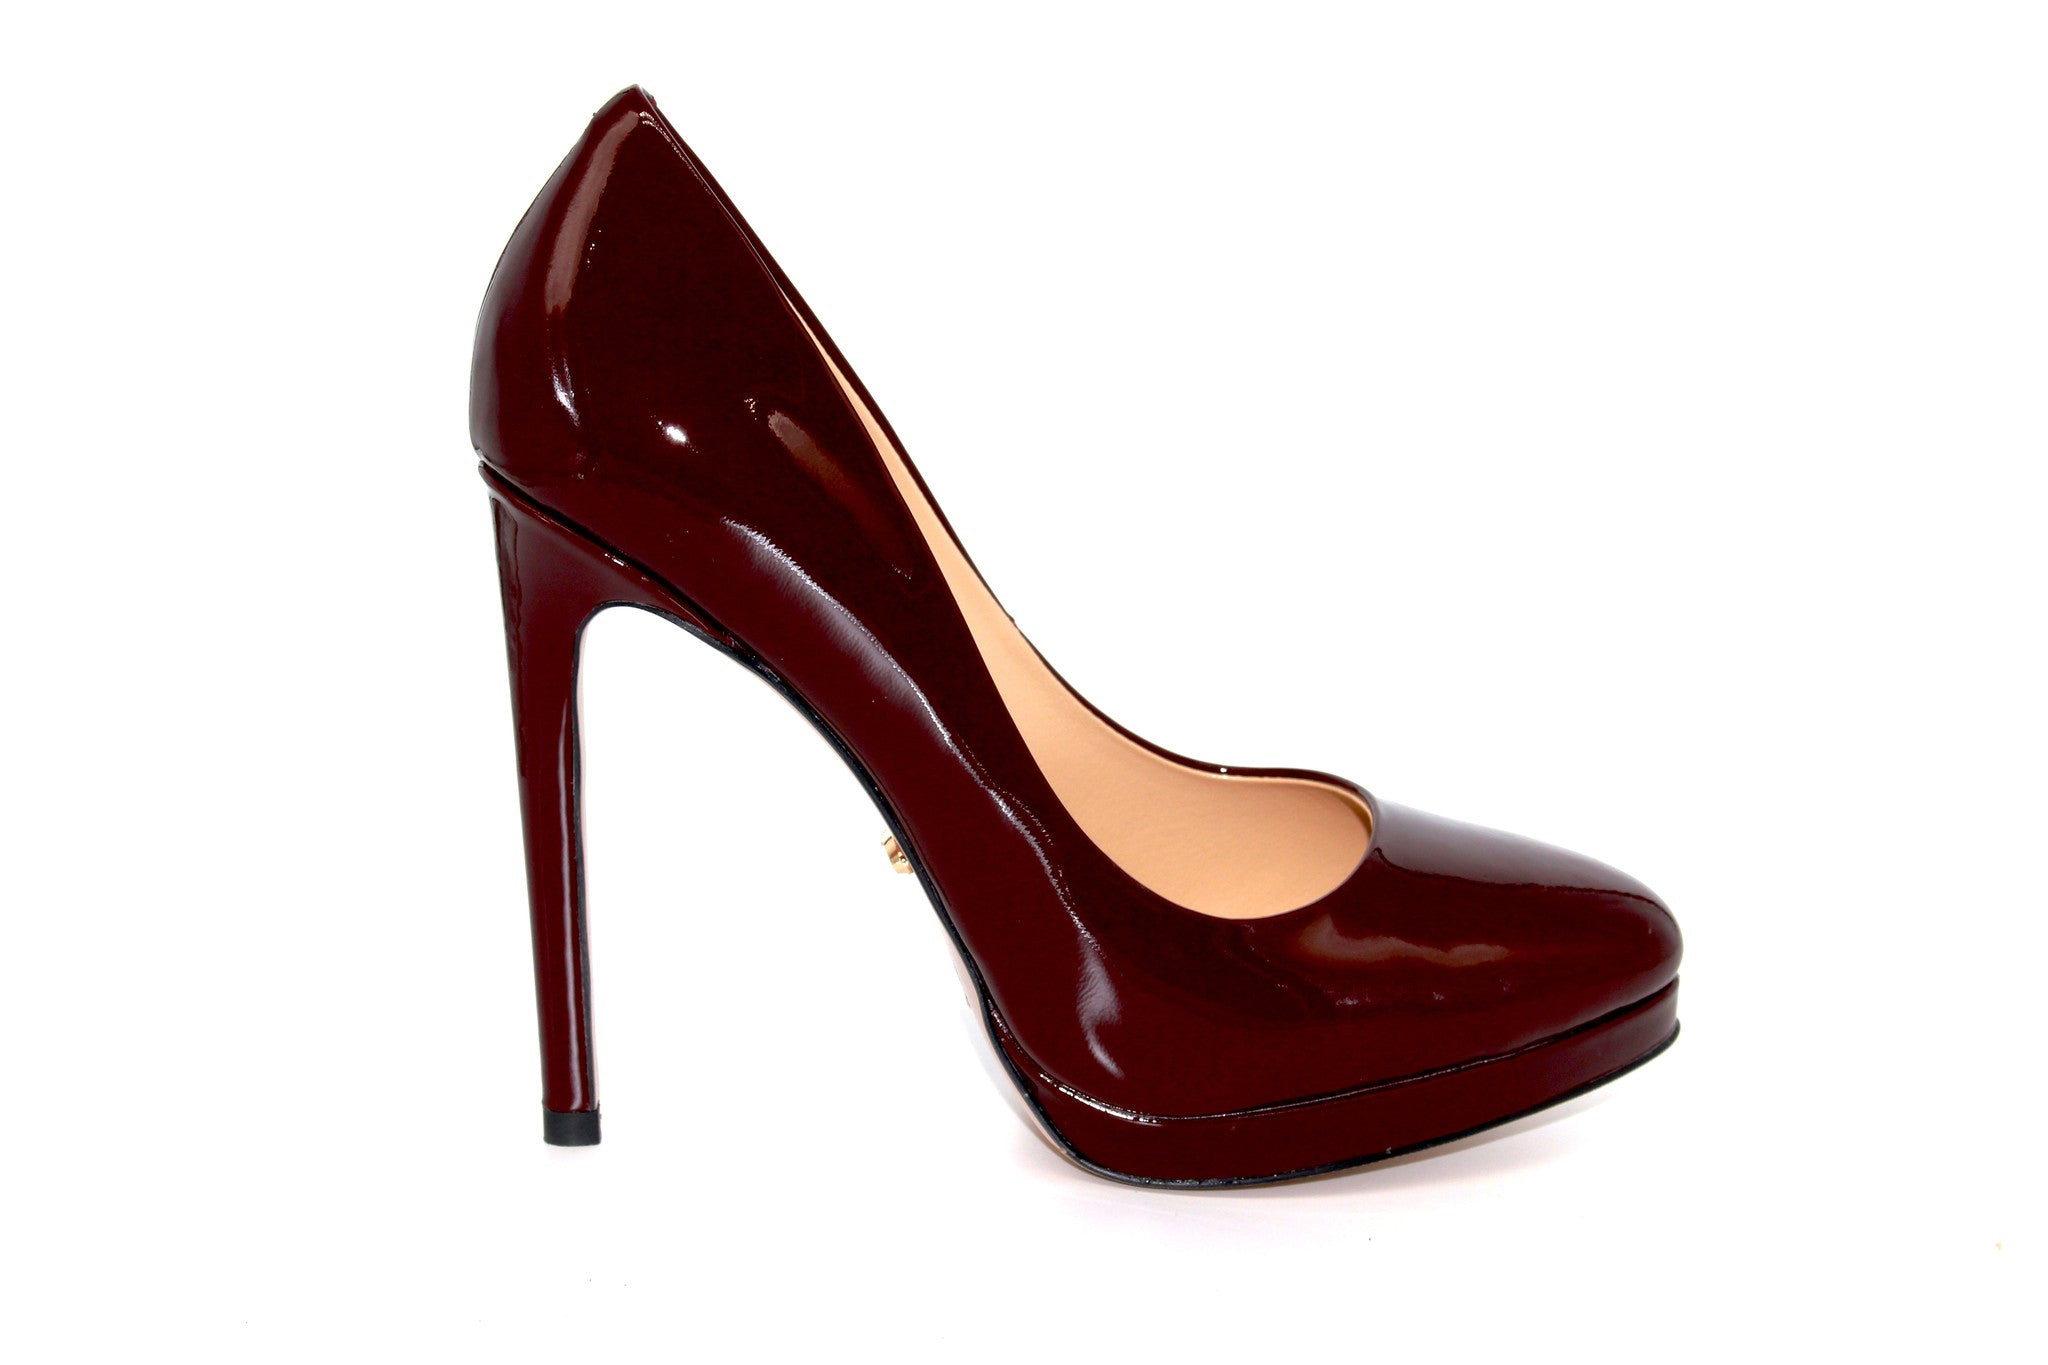 d631f617cb 4.5 Inch Heels - Burgundy Patent Leather Pumps - Angelina Voloshina - AV  Heels - 1 ...